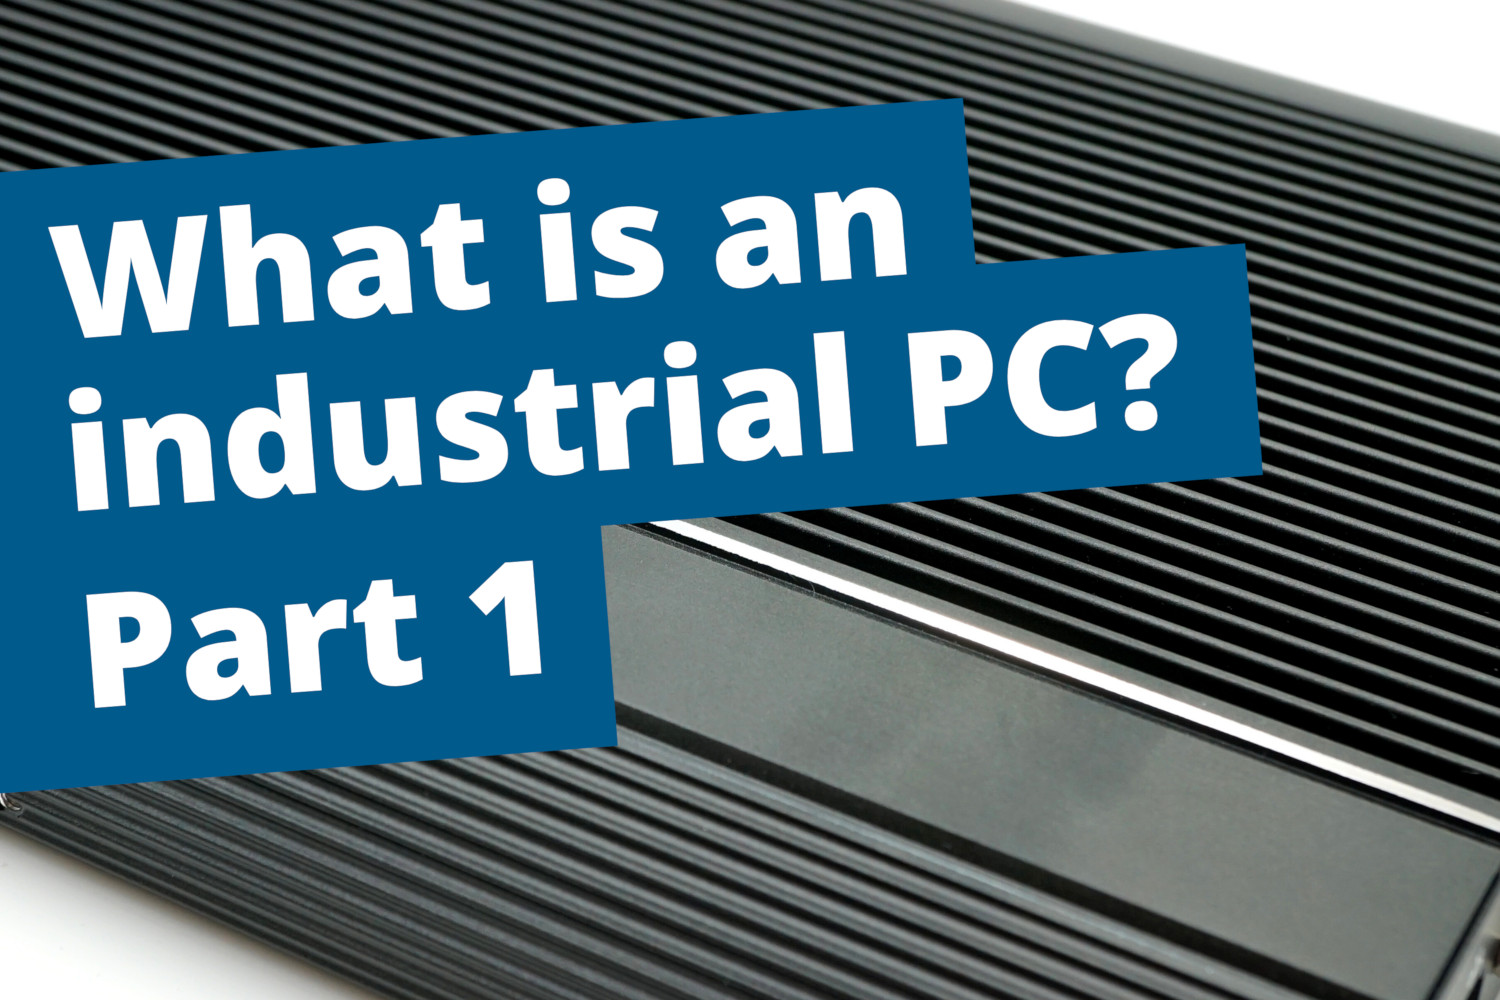 Industrial PCs part 1: The metal housing